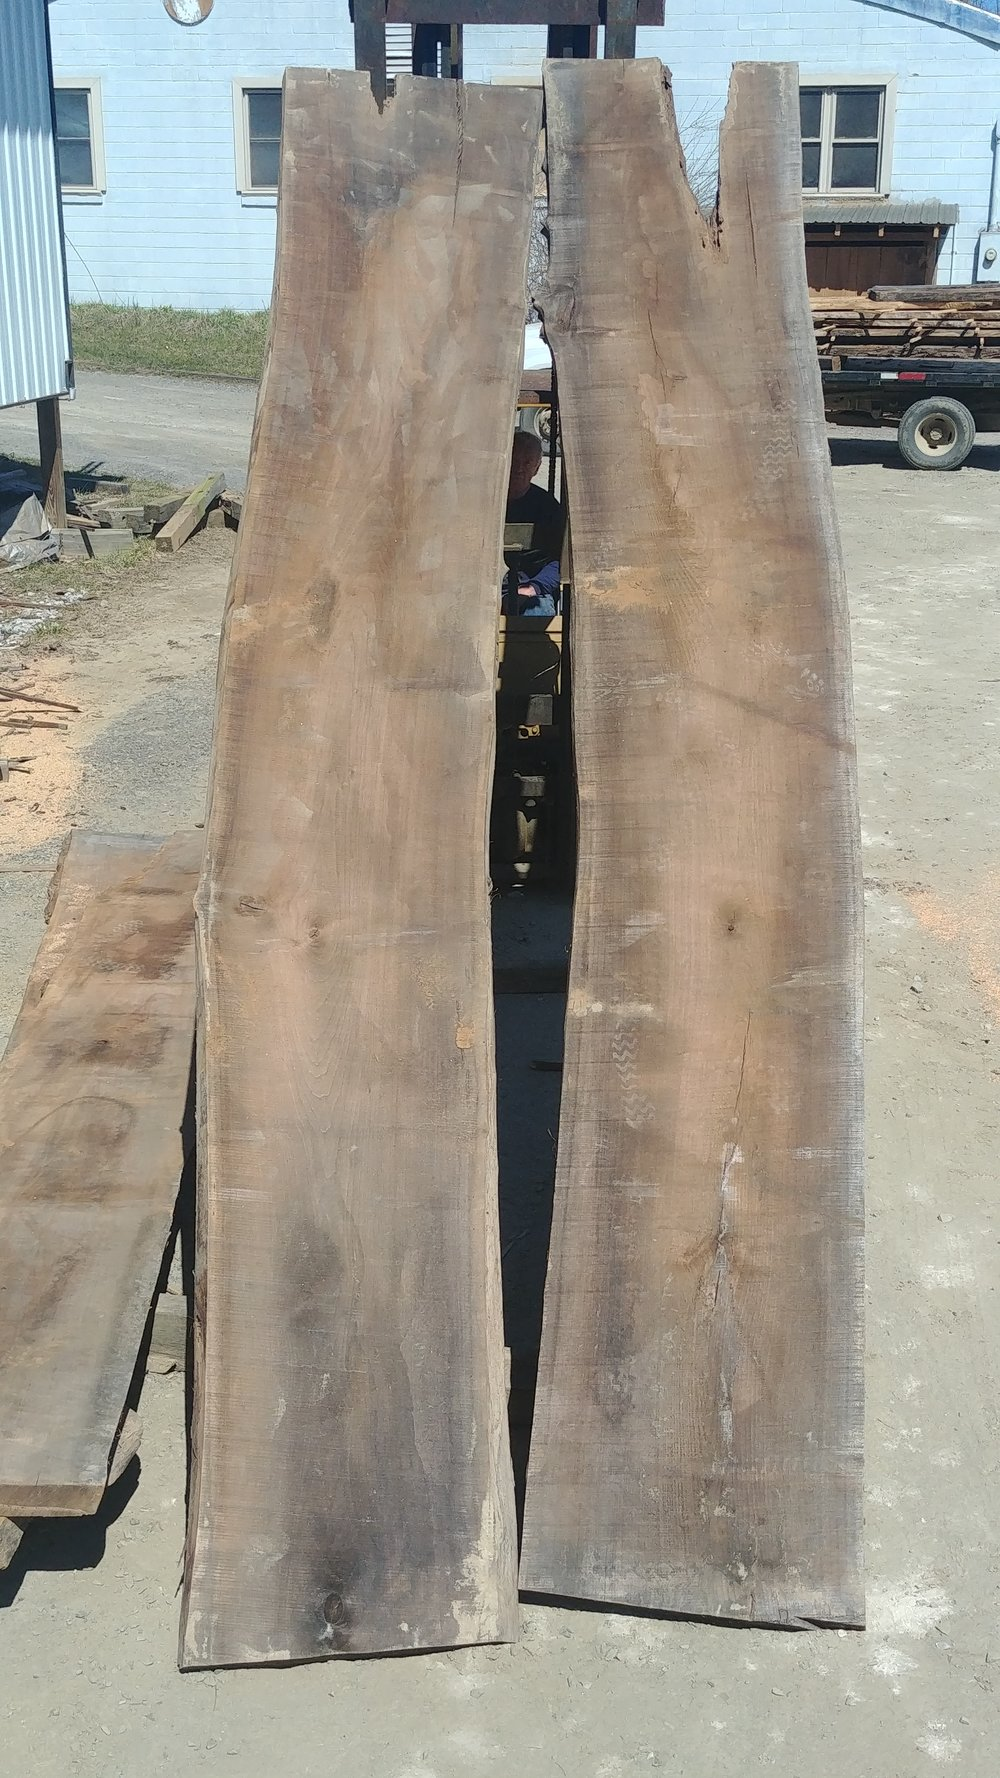 $1800 - Black walnut bookmatch25-28 inches wide14 feet longheart check on one side1-2 knots in each